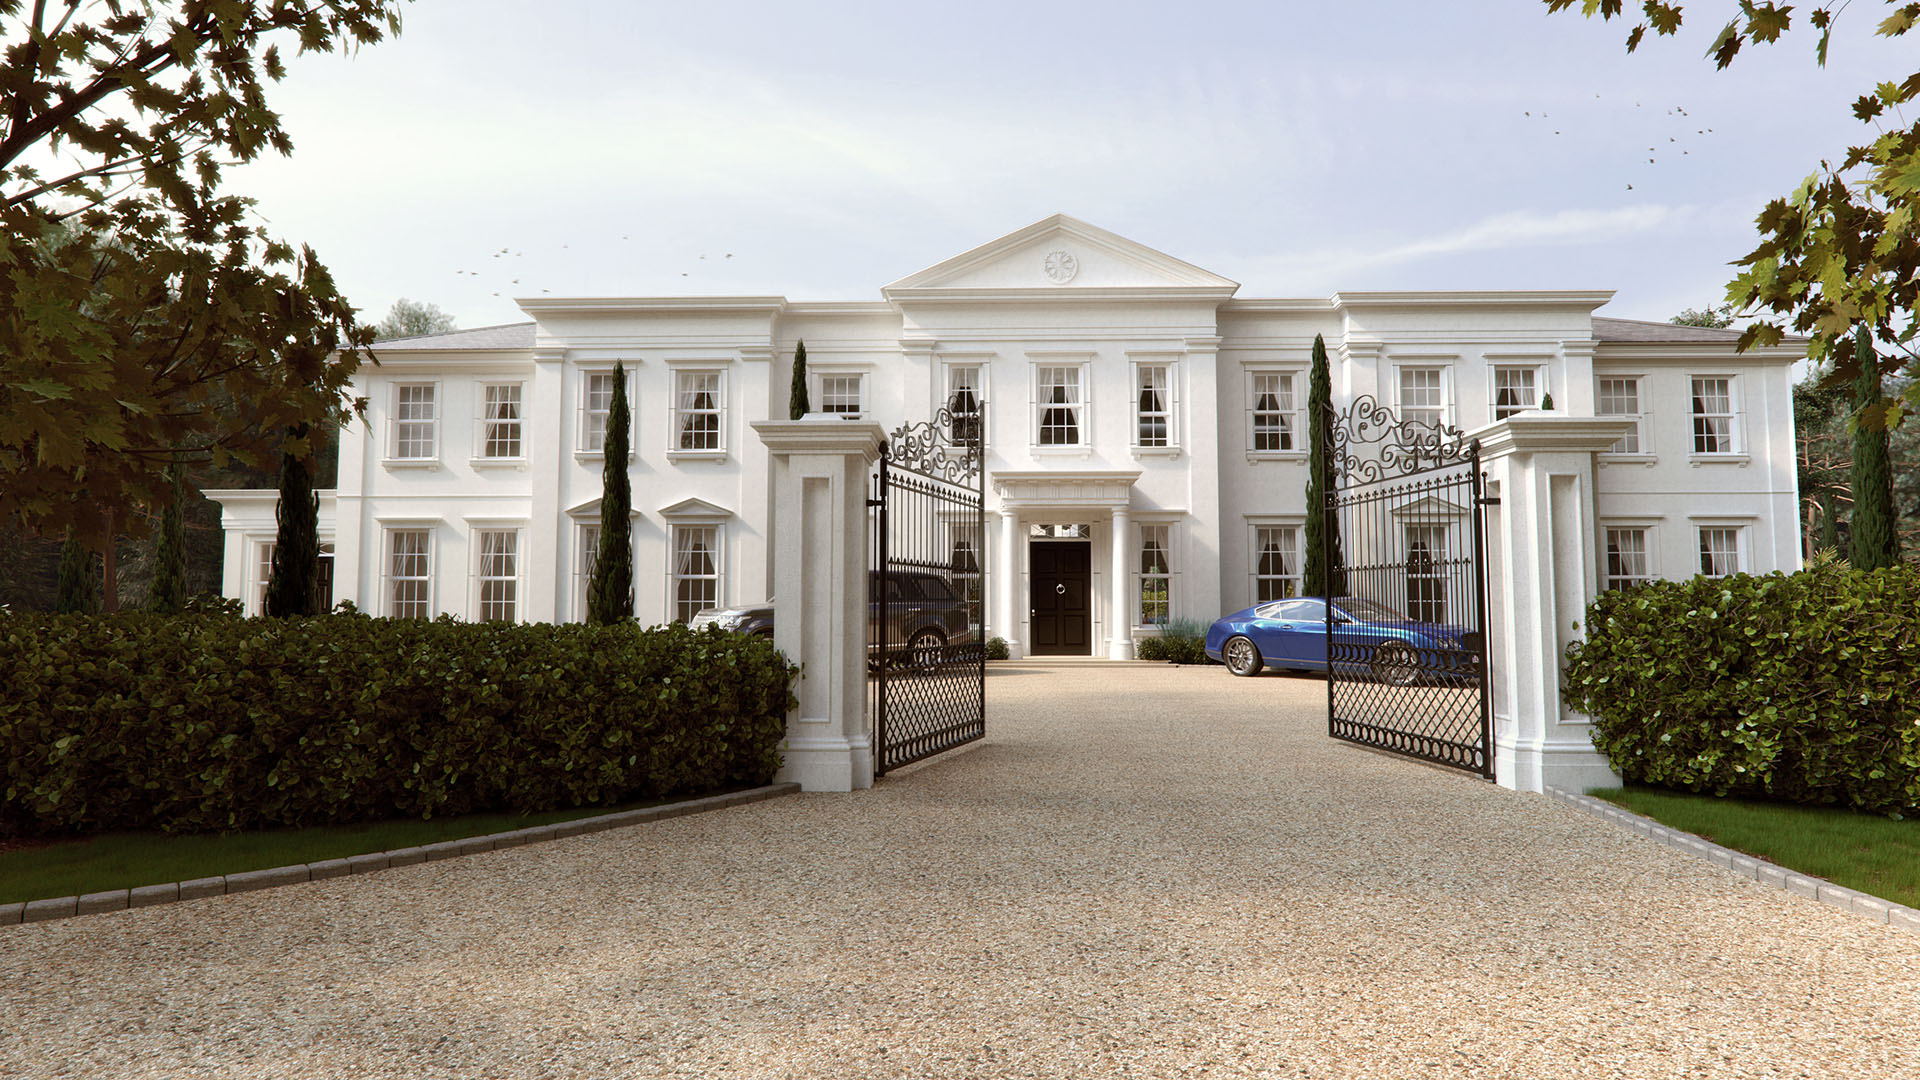 A grand Palladian mansion with white render